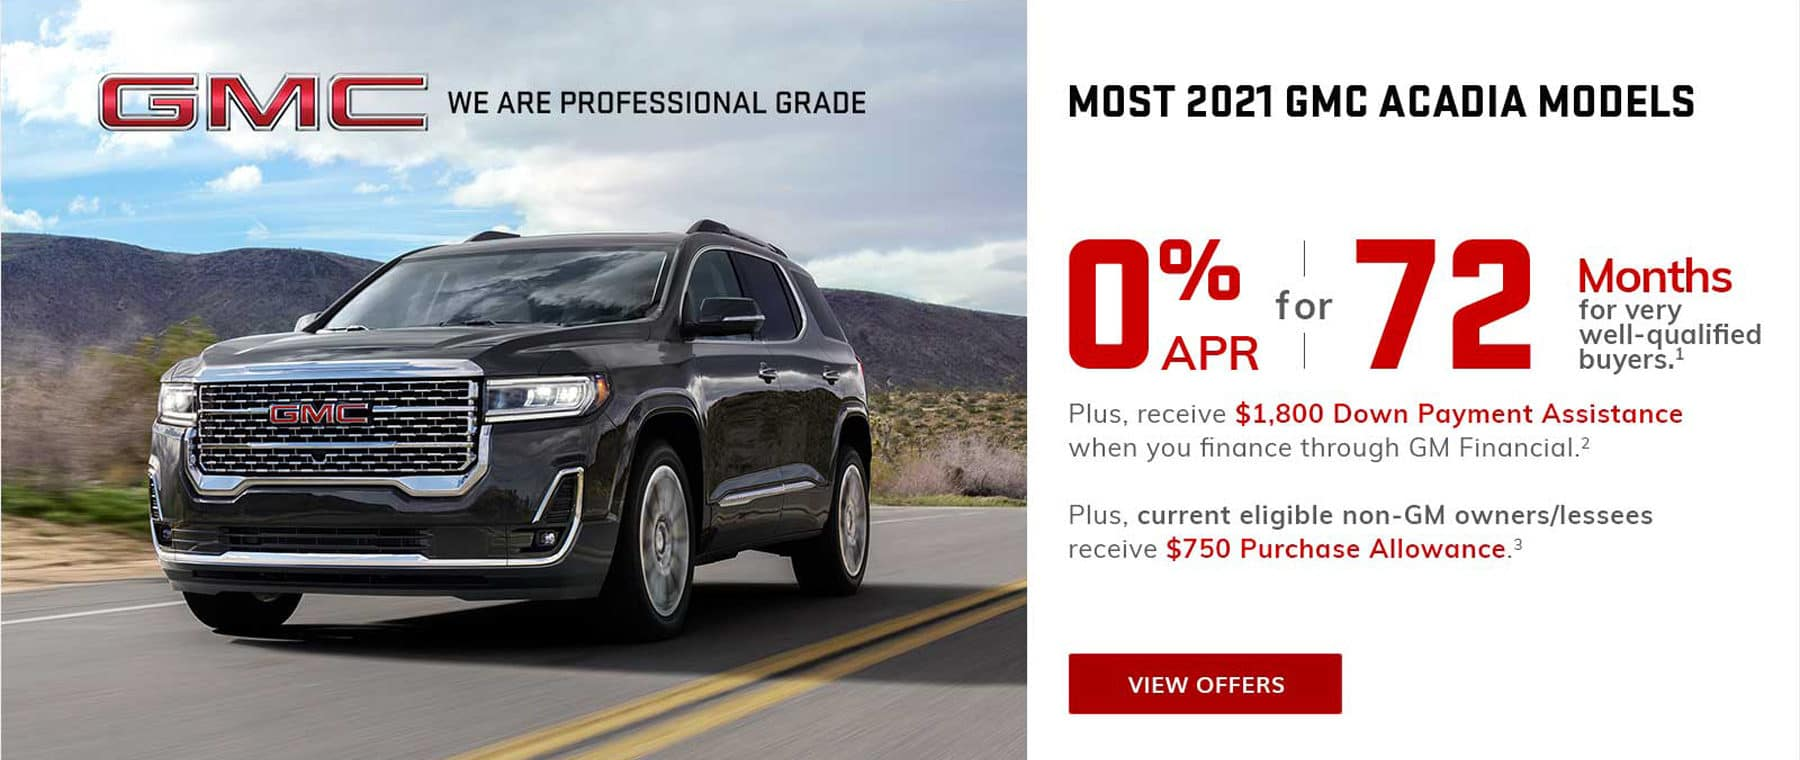 GMC Acadia 0% Financing for 72 Months in West Bend WI